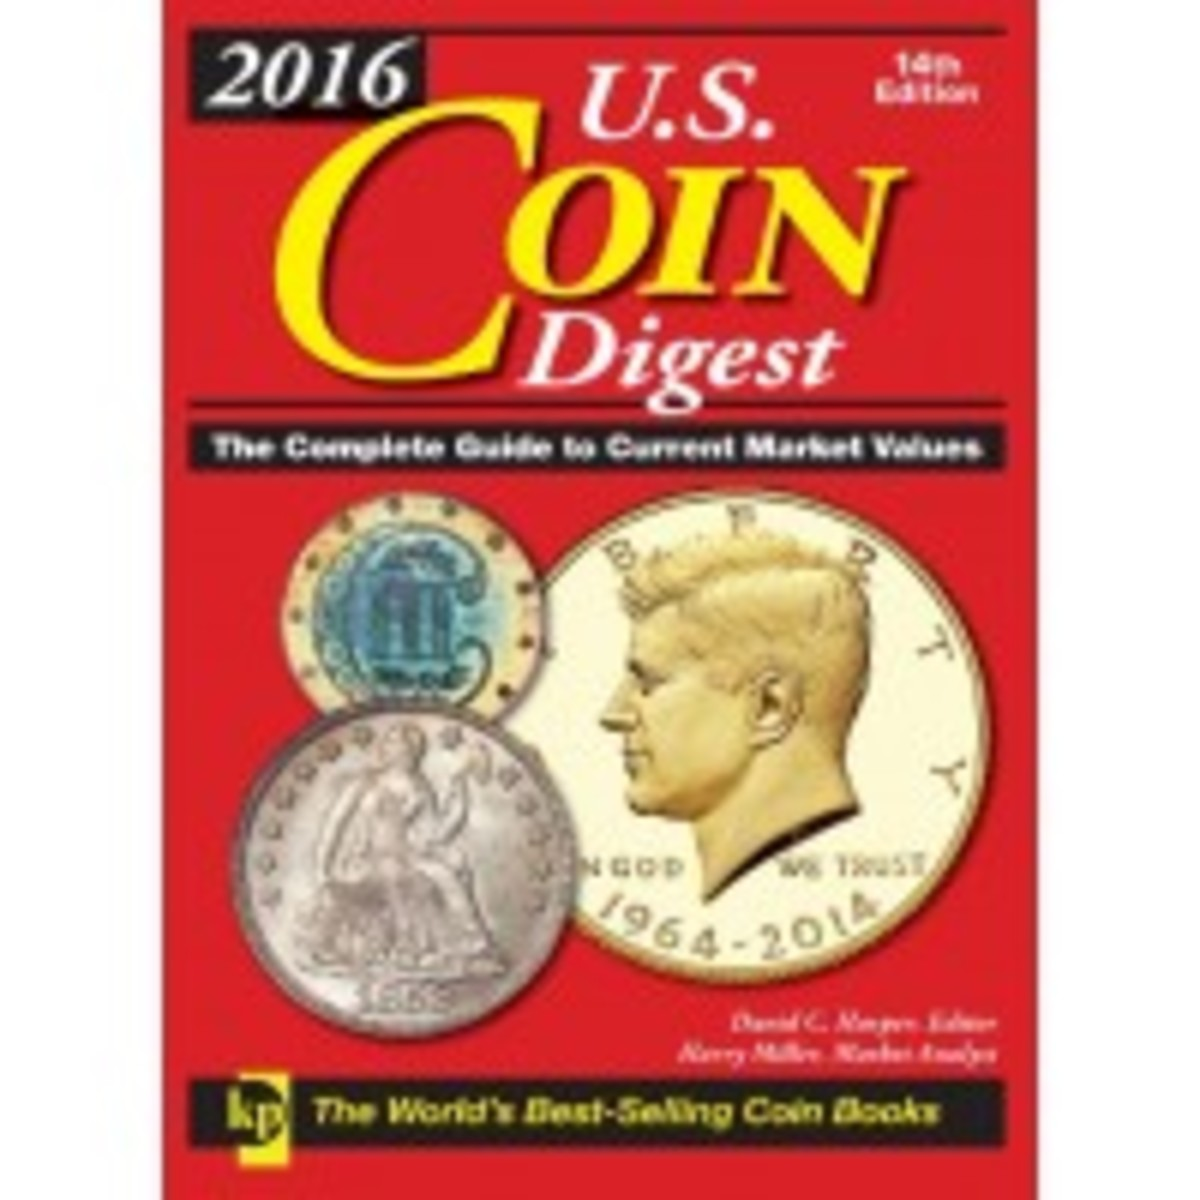 Catch up on the latest U.S. coins prices with the 2016 U.S. Coin Digest!